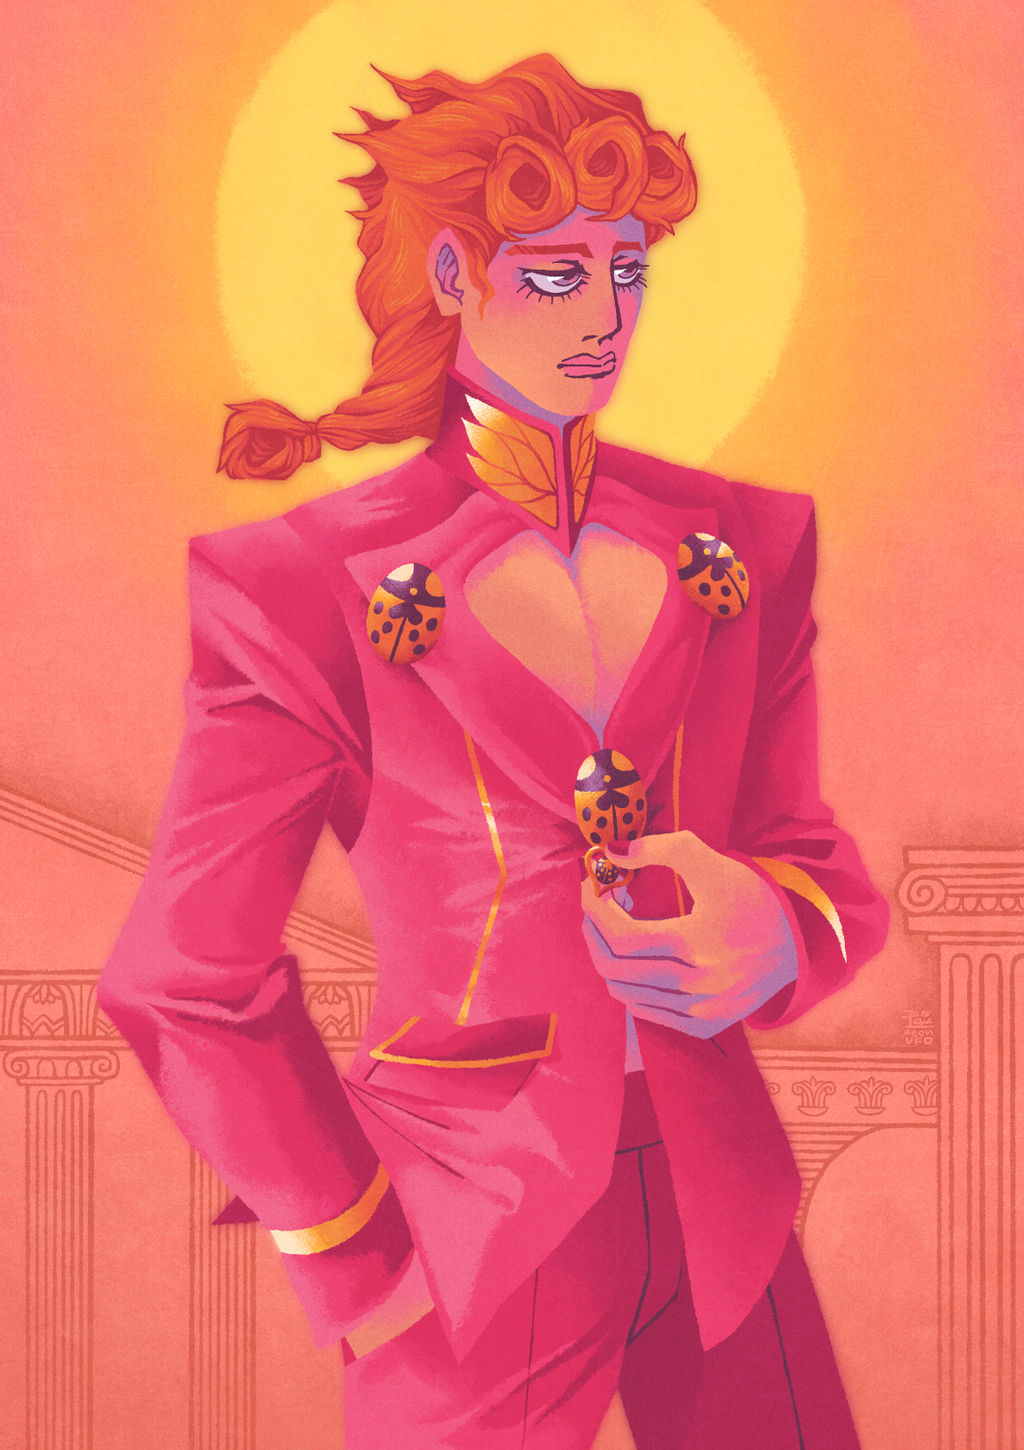 Prince of the dawn